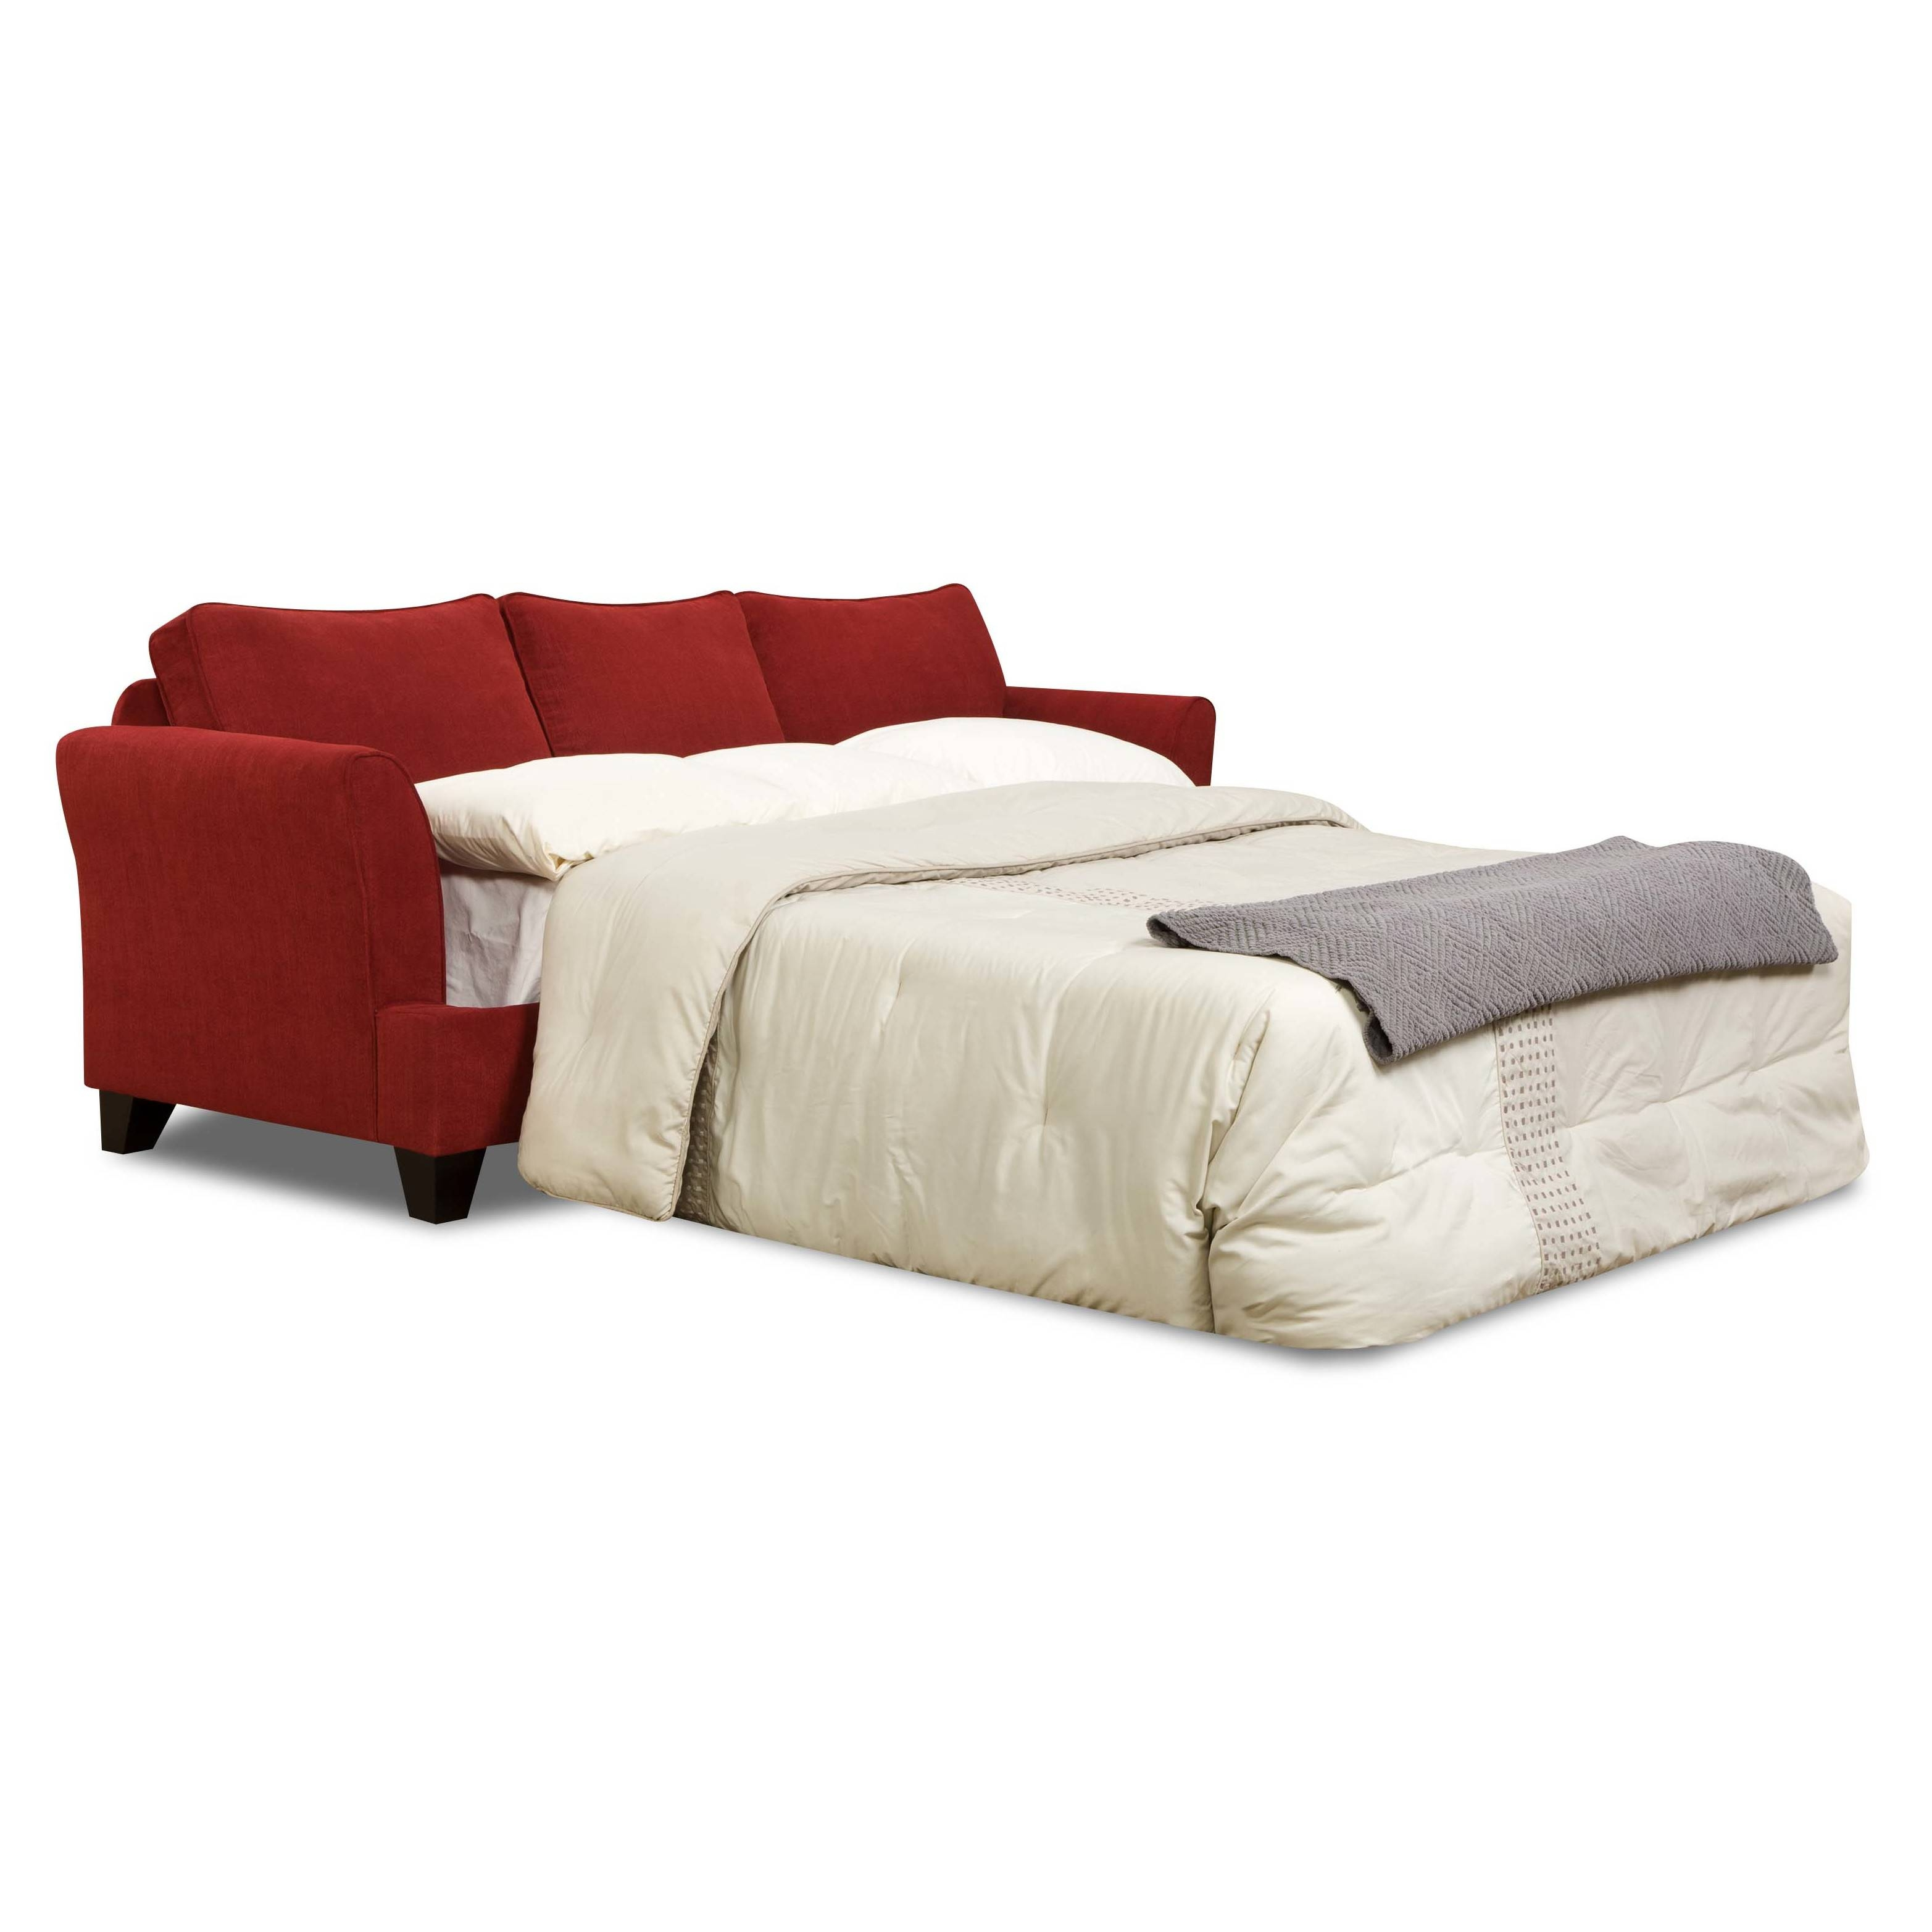 Sofas: Simmons Beautyrest Sofa Bed | Queen Sectional Sleeper Sofa throughout Simmons Sleeper Sofas (Image 14 of 15)